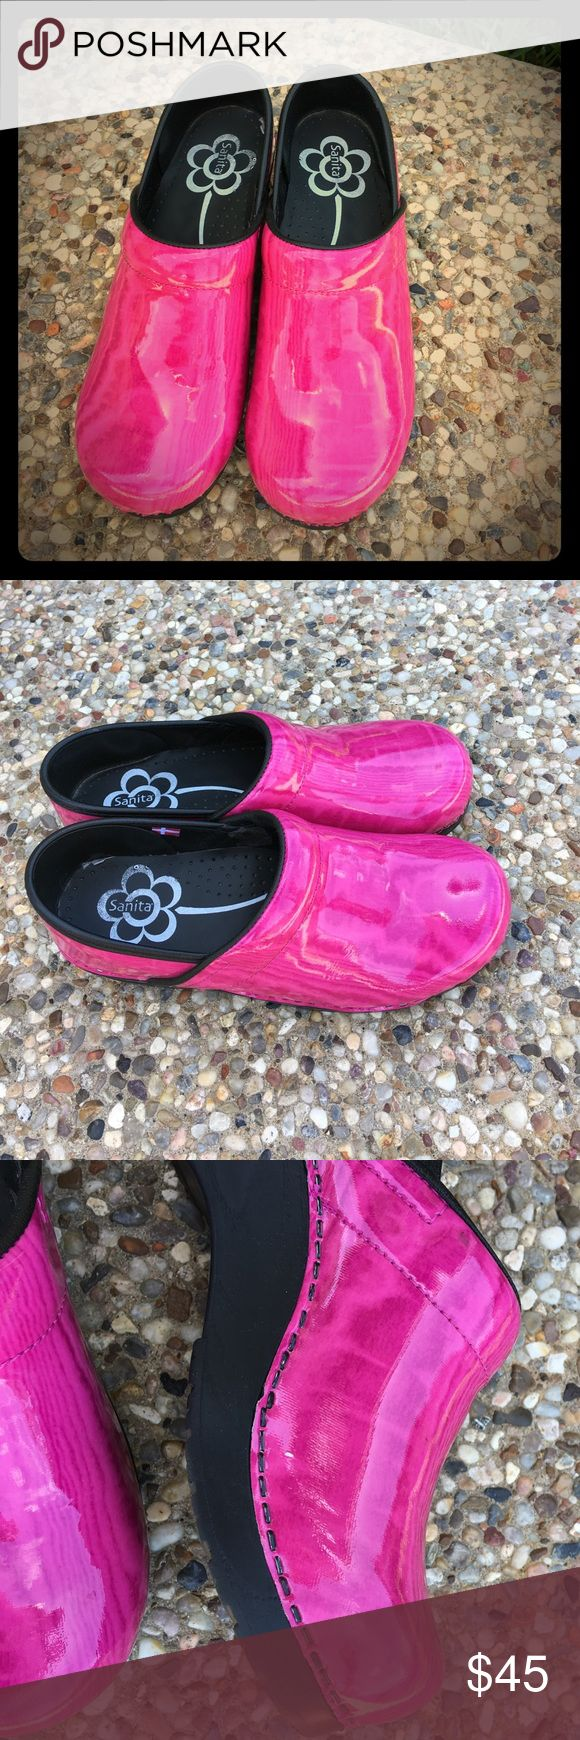 Hot Pink Sanita Clogs Size 38/7.5-8 These Clogs are in great condition. The only flaw is a small chip mark as pictured in pic 3. No noticeable when wearing. They have a shiny finish. Only worn a few times on carpet. So comfy! Inside is spotless.. No box Sanita Shoes Mules & Clogs